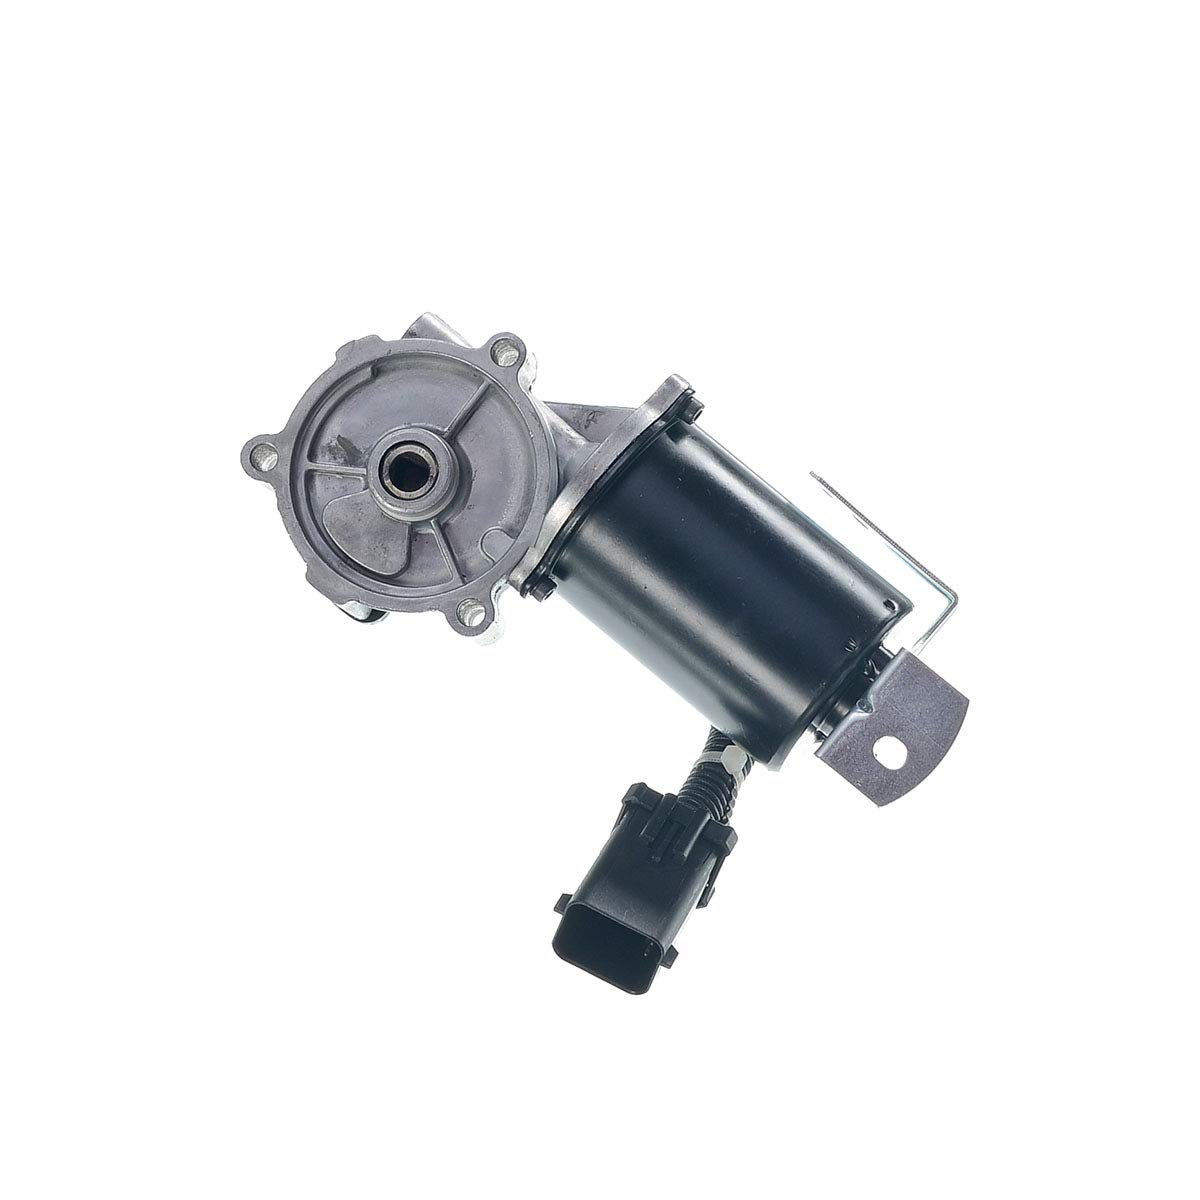 A-Premium Transfer Case Shift Motor Actuator For Ford F-150 2012-2014 Expedition 2012-2017 4WD